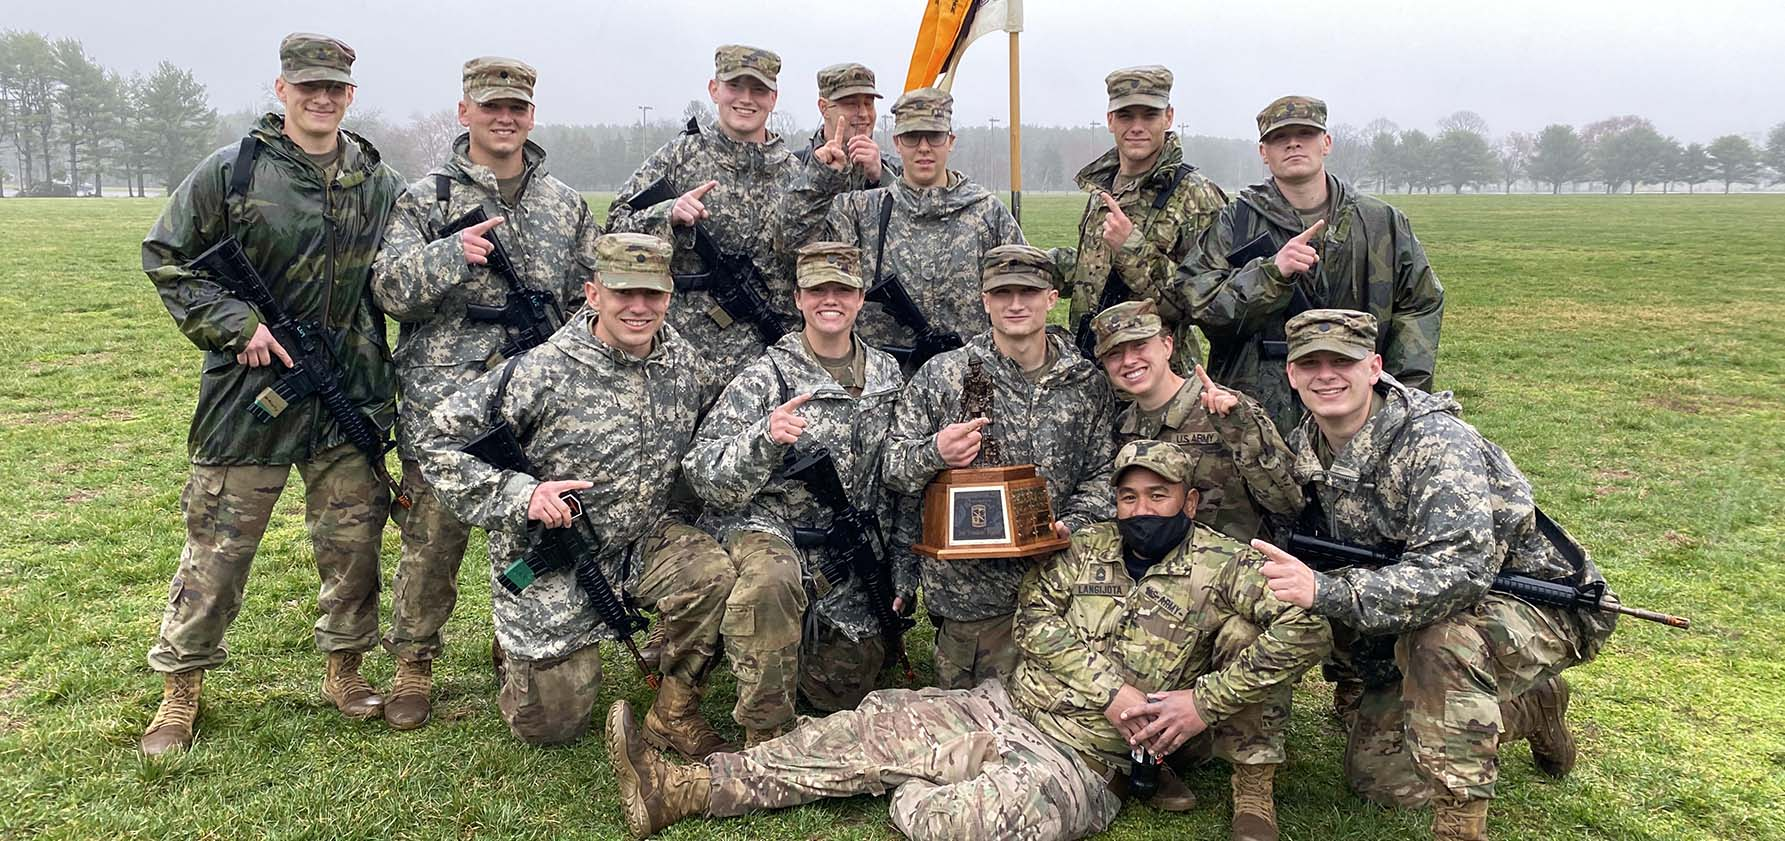 Members of the Steel Battalion Army ROTC are gathered on Lehigh University's campus.